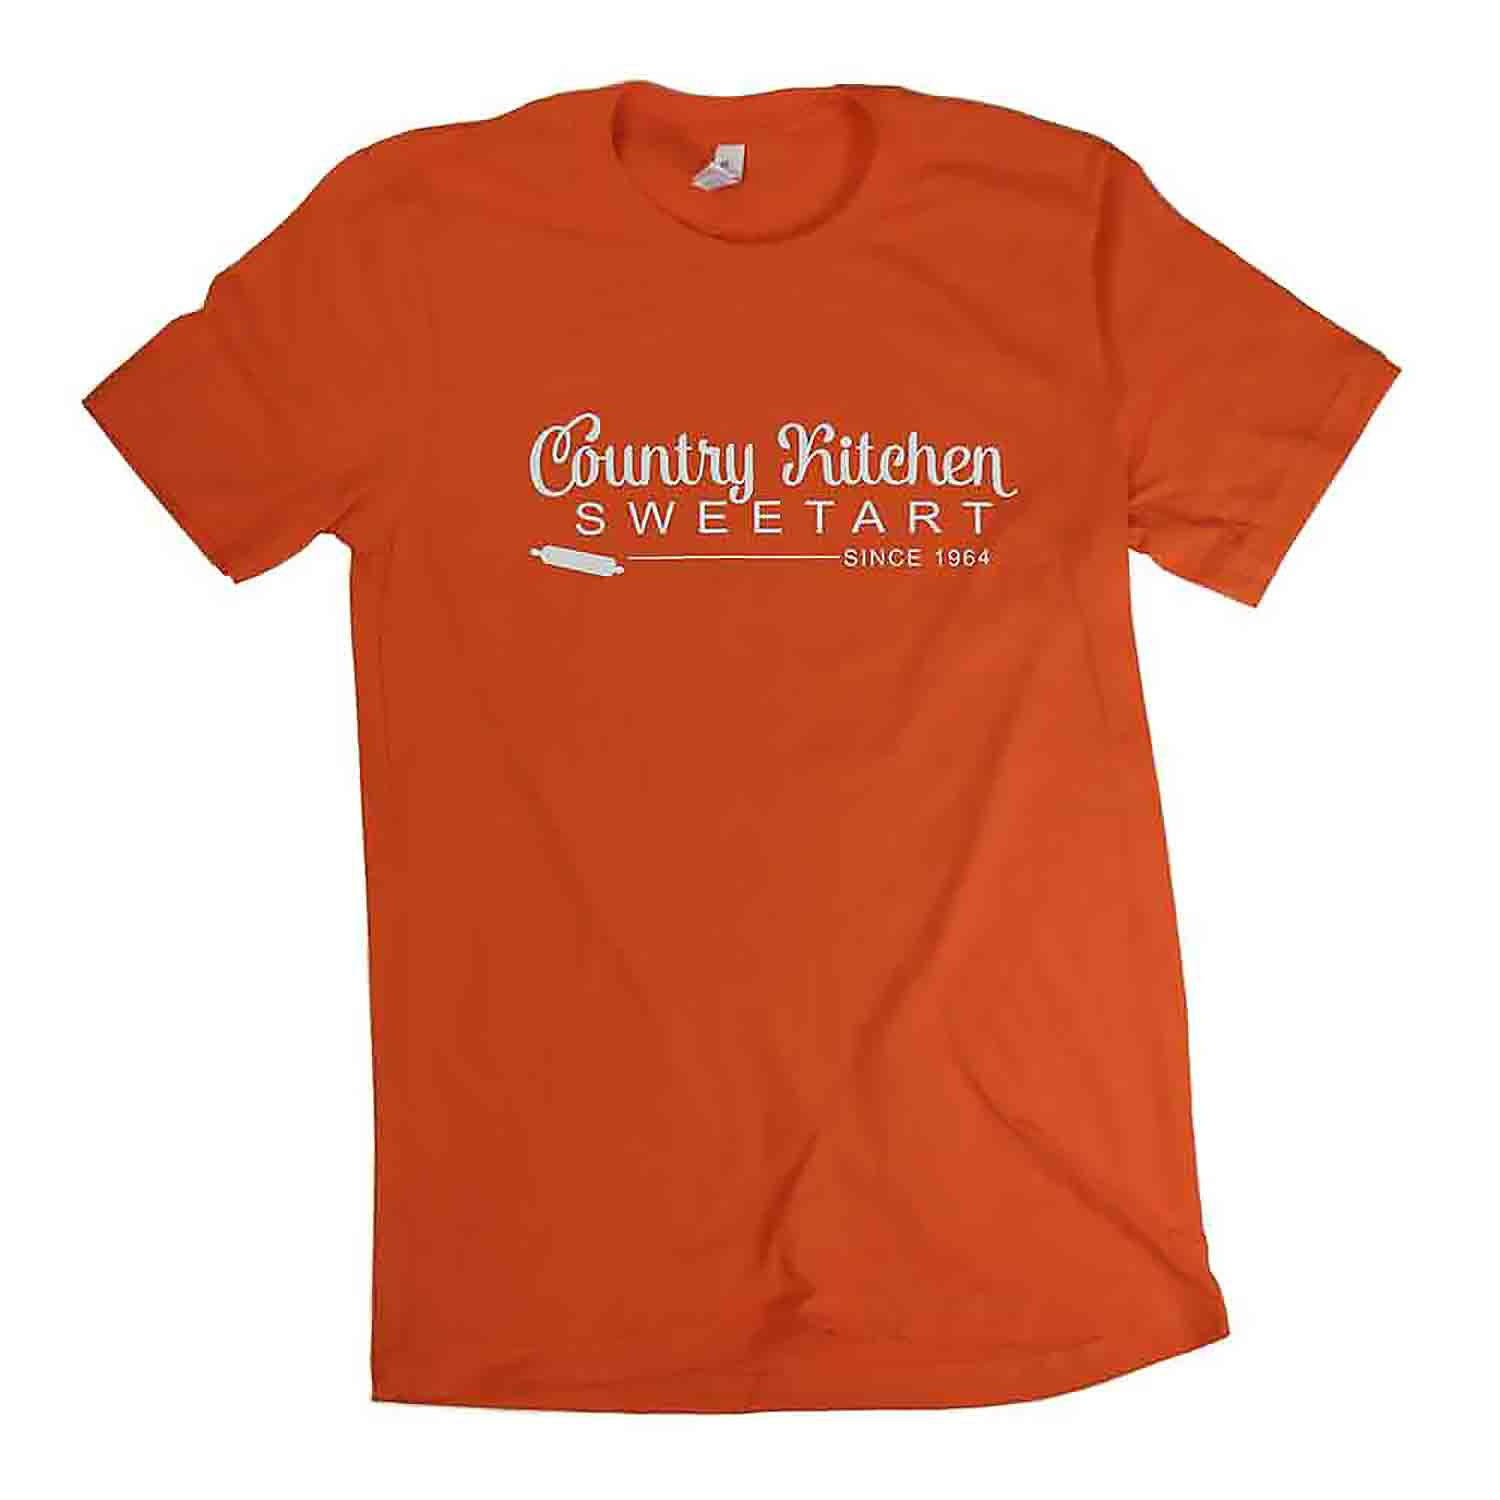 Orange Country Kitchen Sweetart T-Shirt - Extra Large